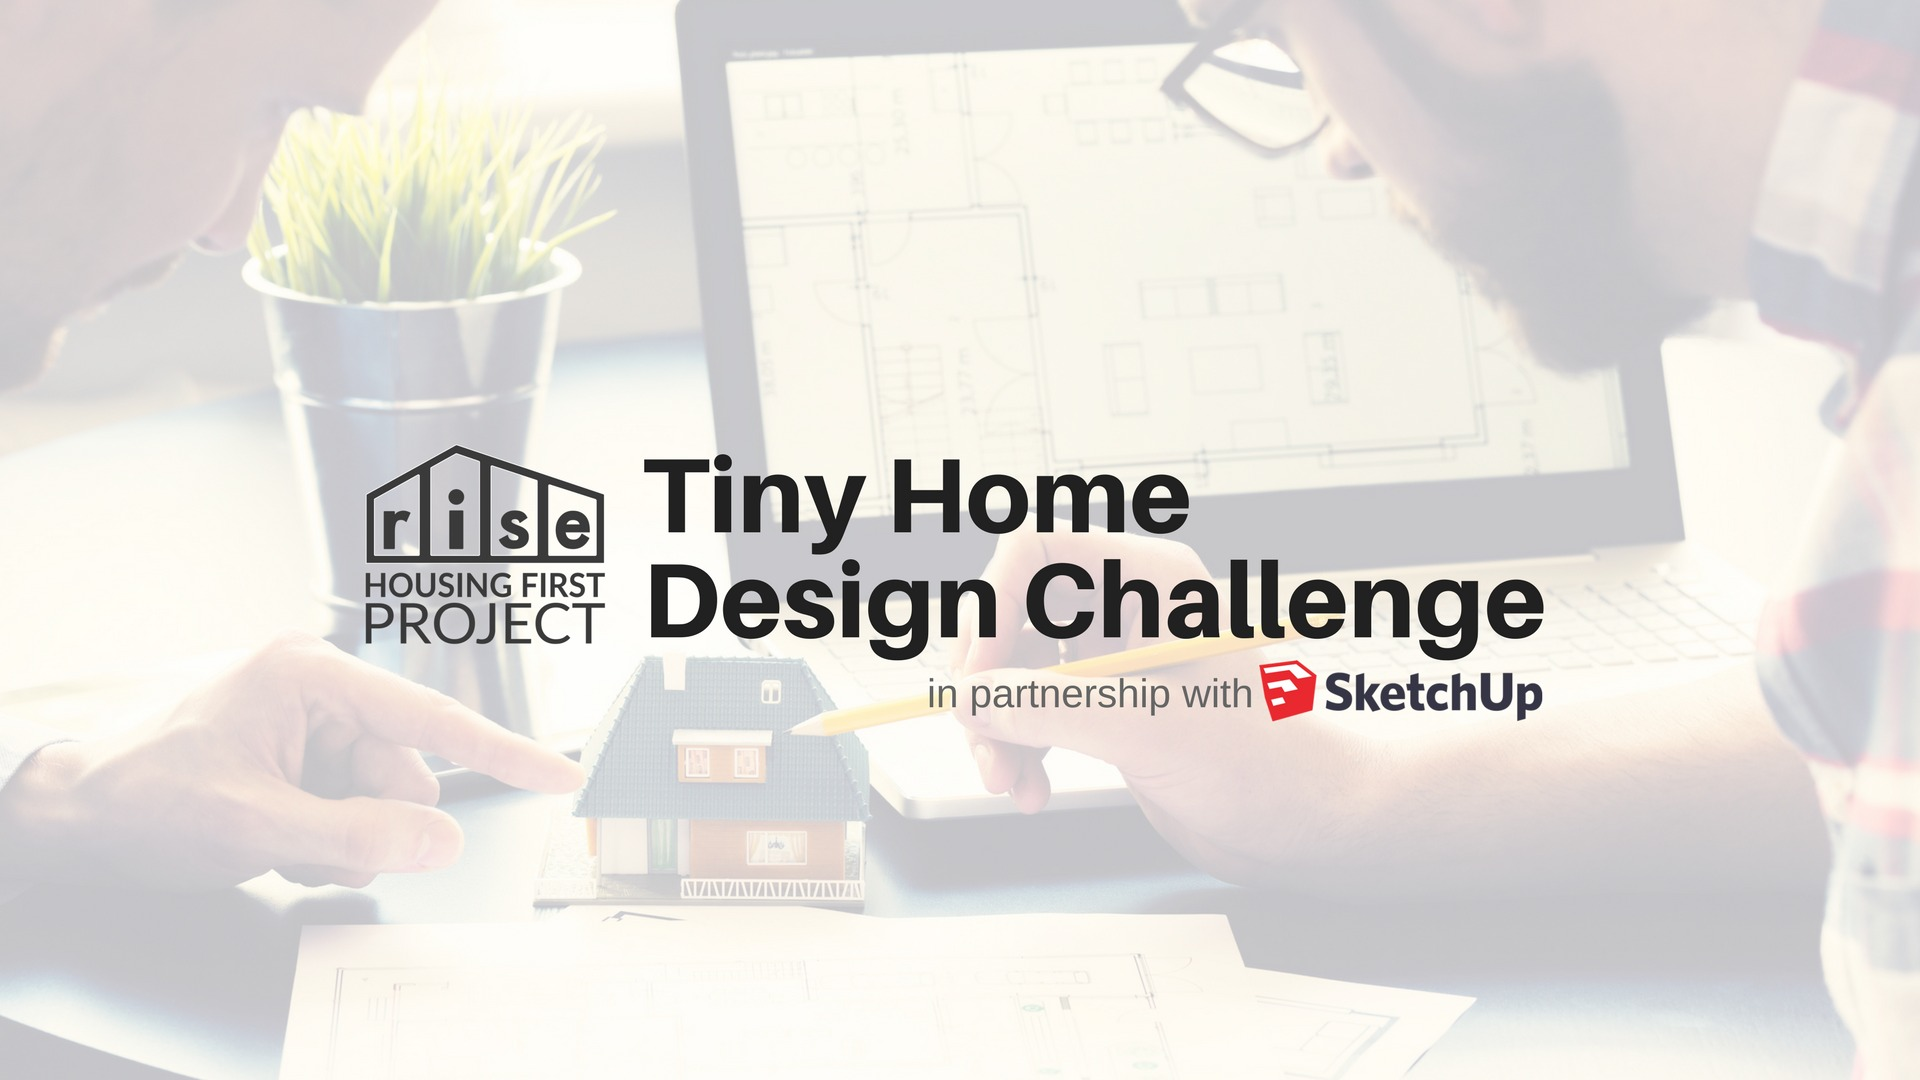 Interior design challenge eco home - Call For Entries Rise Tiny Home Design Challenge